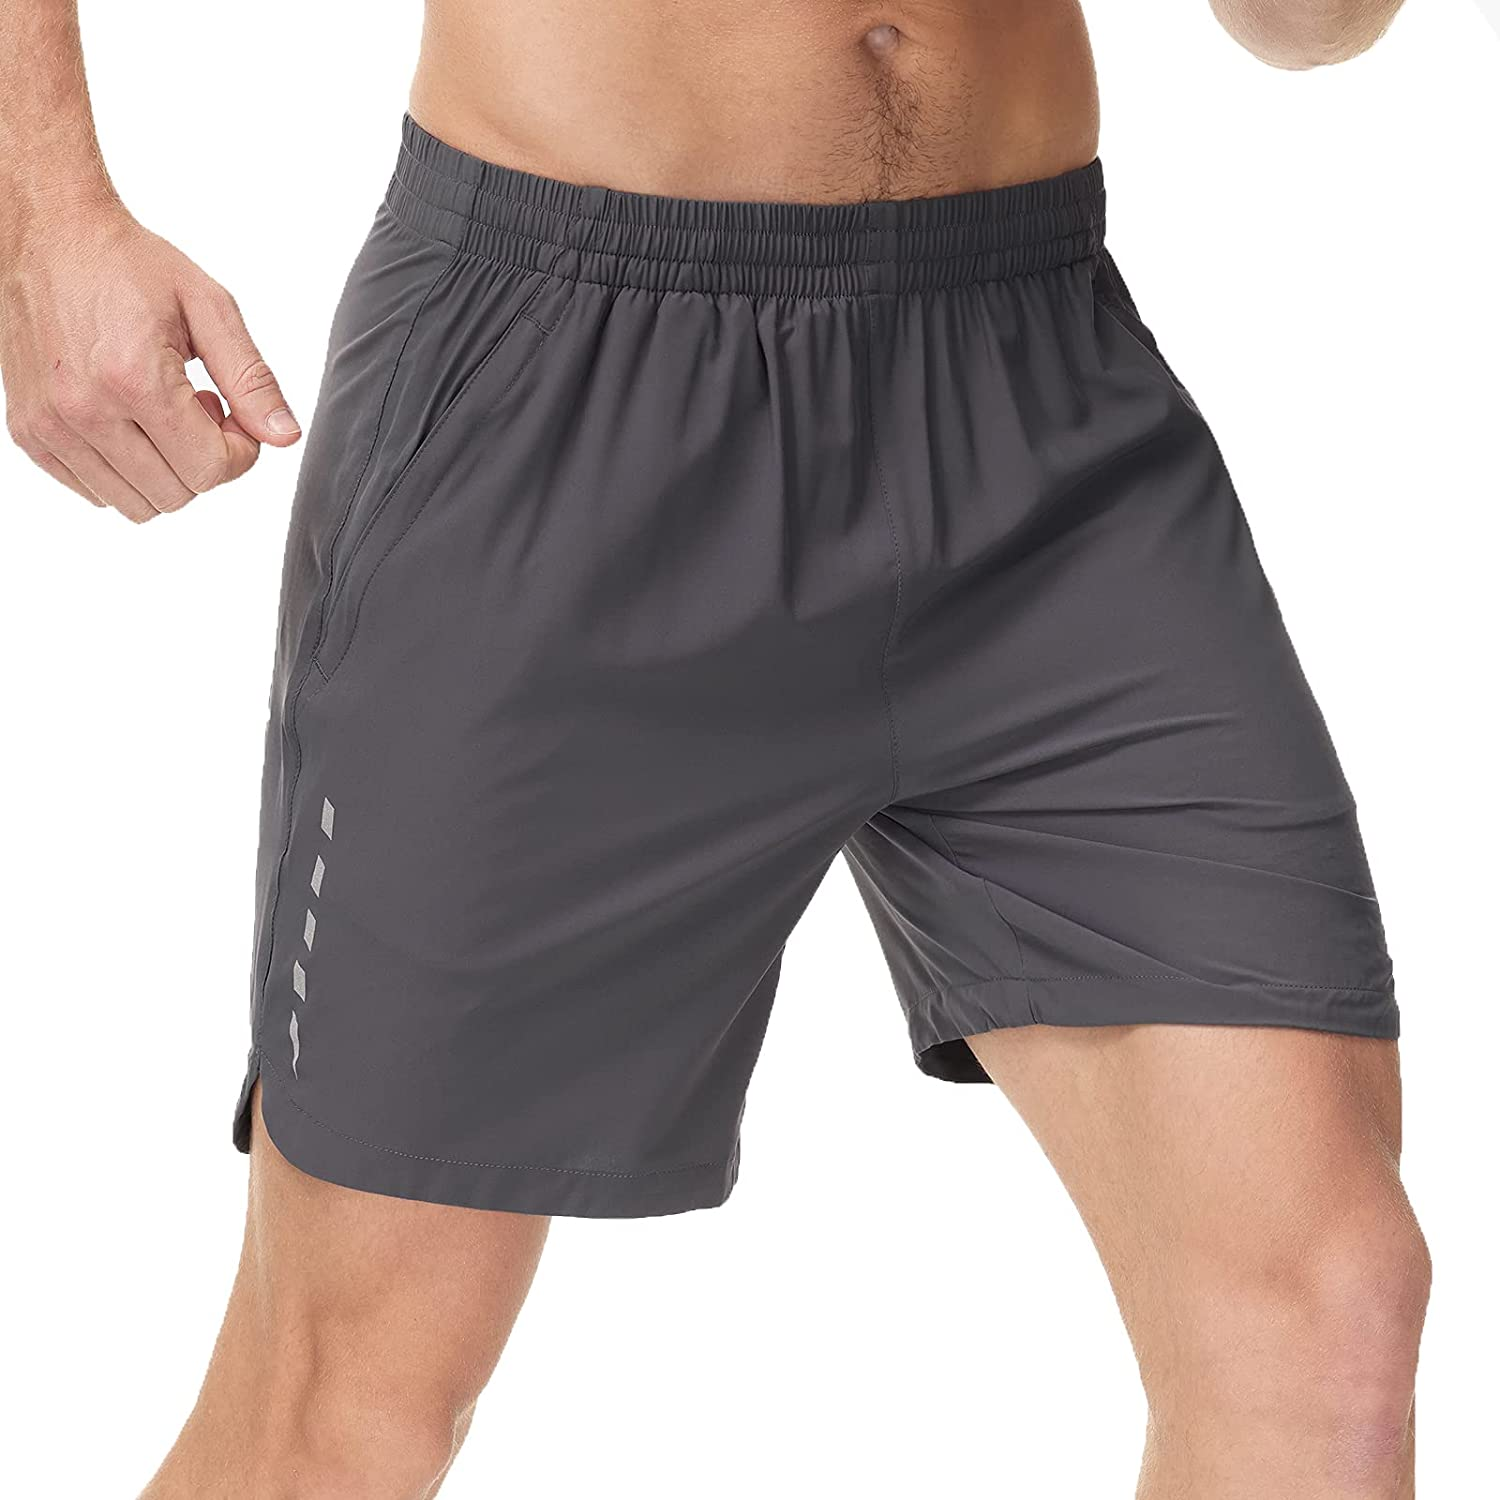 MIER Men's Quick Dry Workout Running Shorts Active Shorts with 4